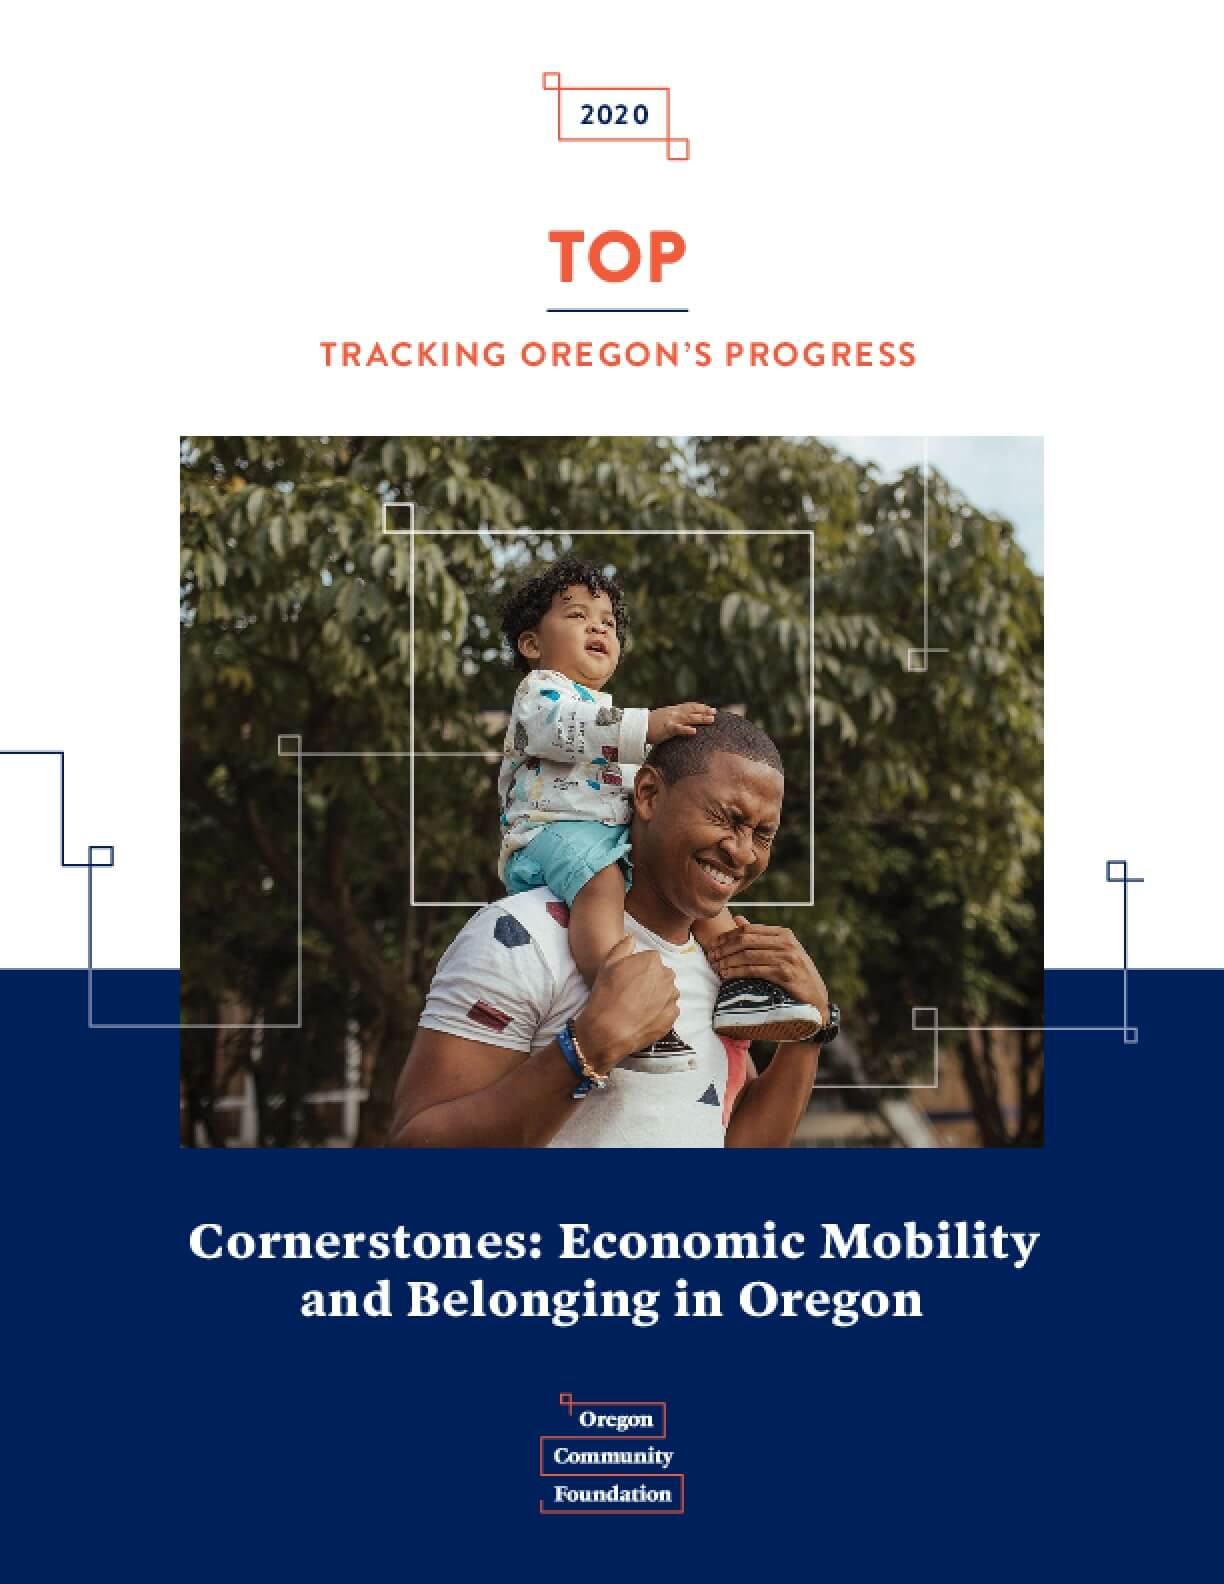 TOP (Tracking Oregon's Progress) Report 2020: Cornerstones: Economic Mobility and Belonging in Oregon